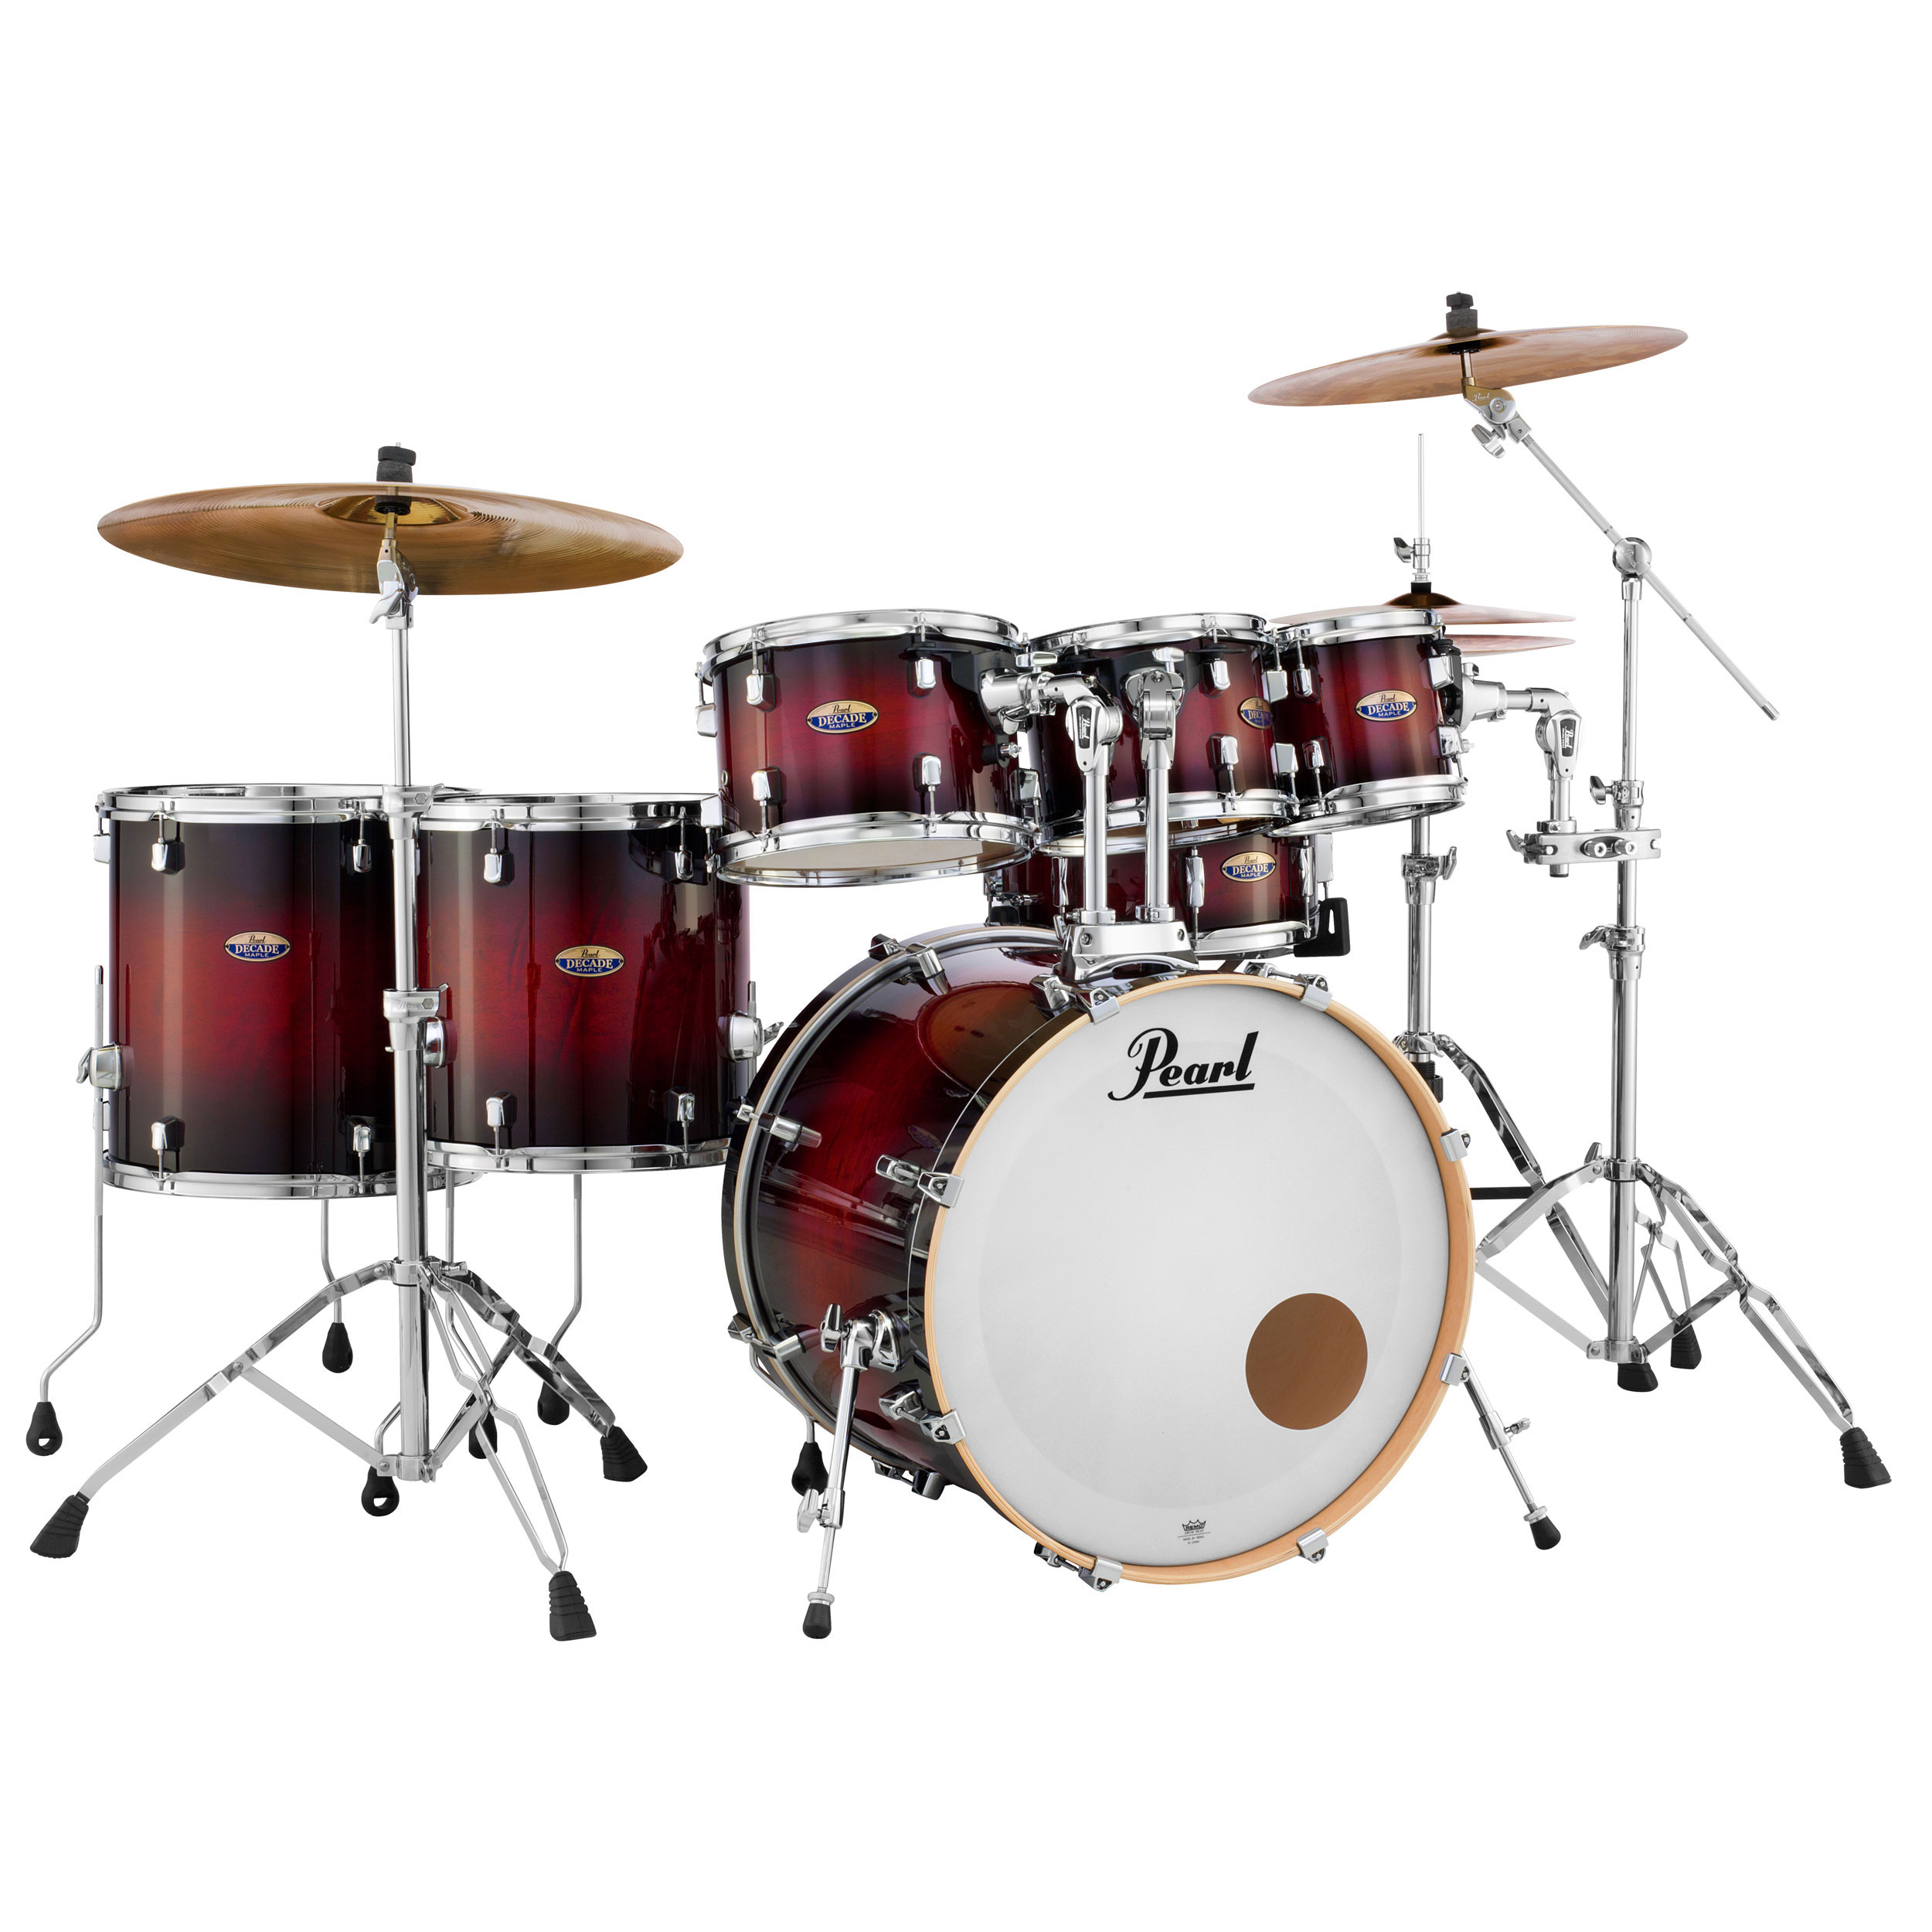 """Pearl Decade Maple 7-Piece Drum Set Shell Pack (22"""" Bass, 8/10/12/14/16"""" Toms, 14"""" Snare)"""